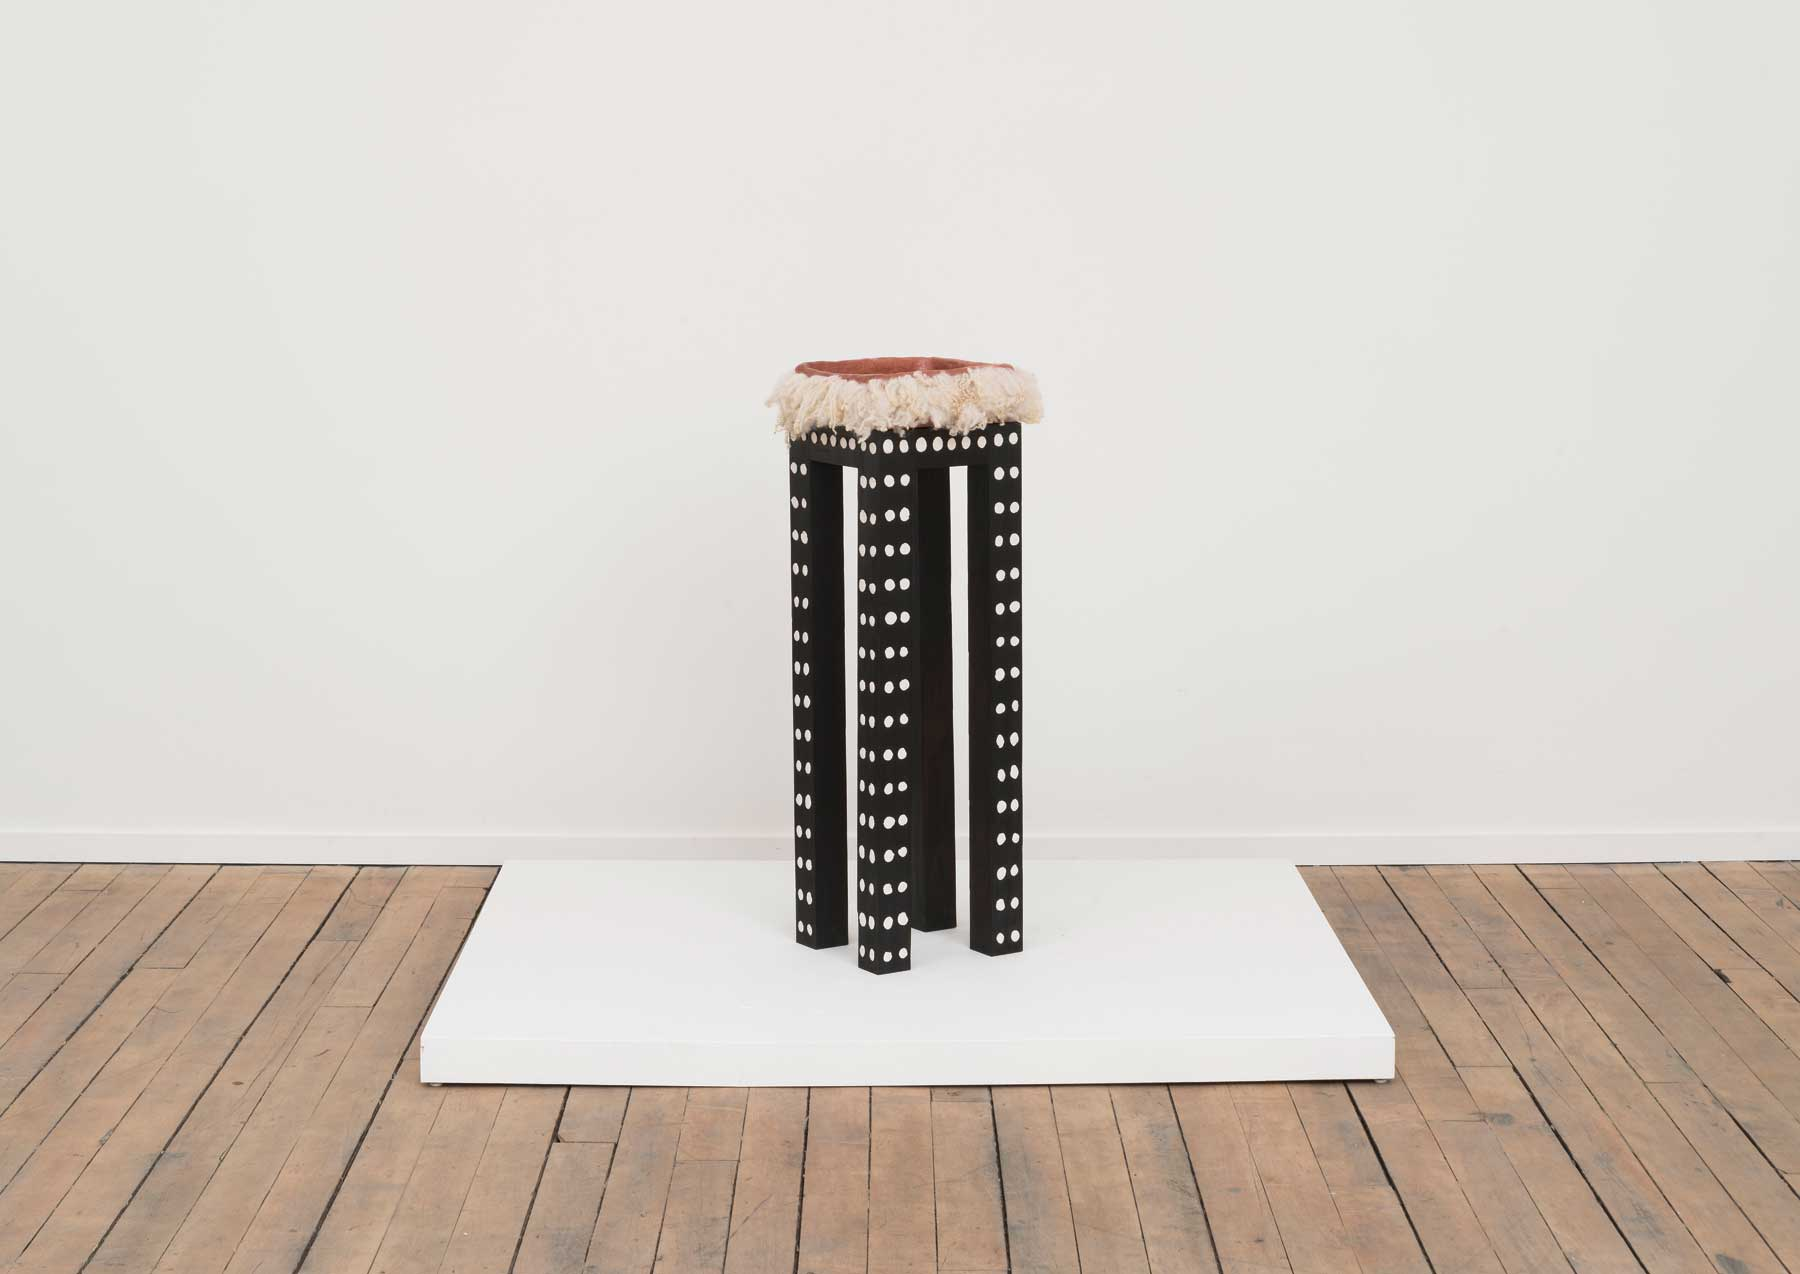 Soothe Table (Provide) , 2015  Charred poplar, self-drying clay, terra-cotta, wool  10 x 10 x 35.5inches  Image courtesy of Volume Gallery, Chicago, IL